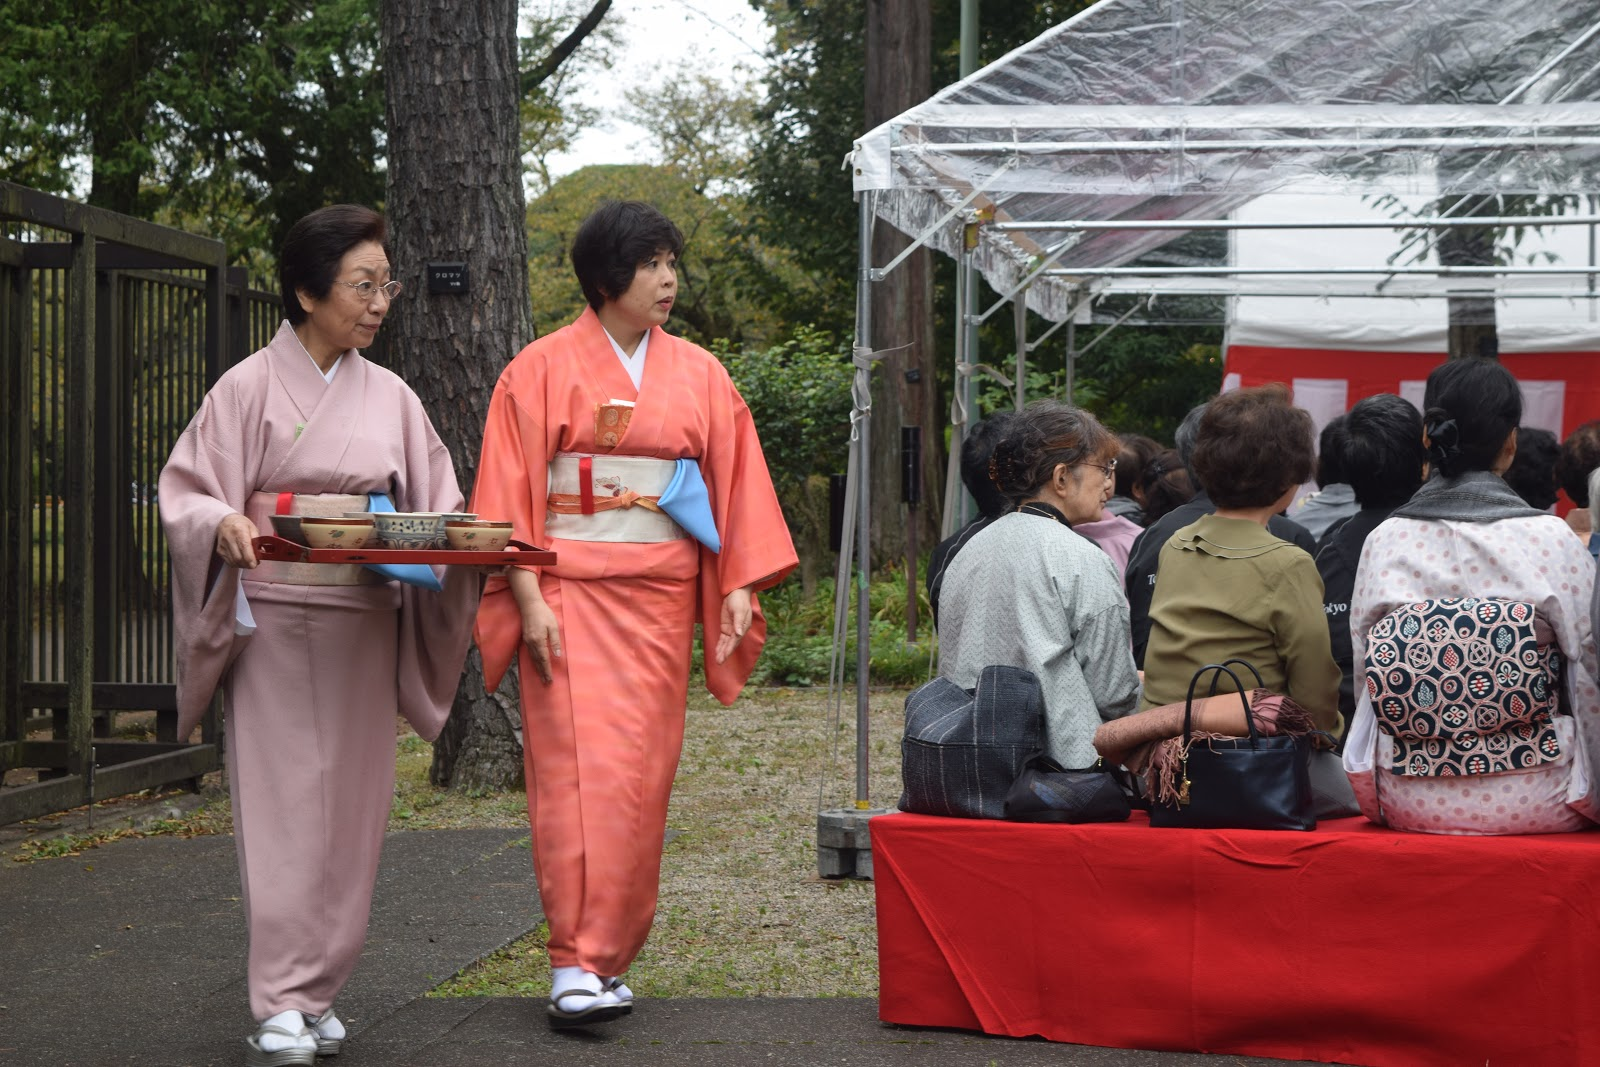 Picture of a woman in a kimono carrying a tea tray with another woman in a kimono accompanying her as they walk to a group of seated people